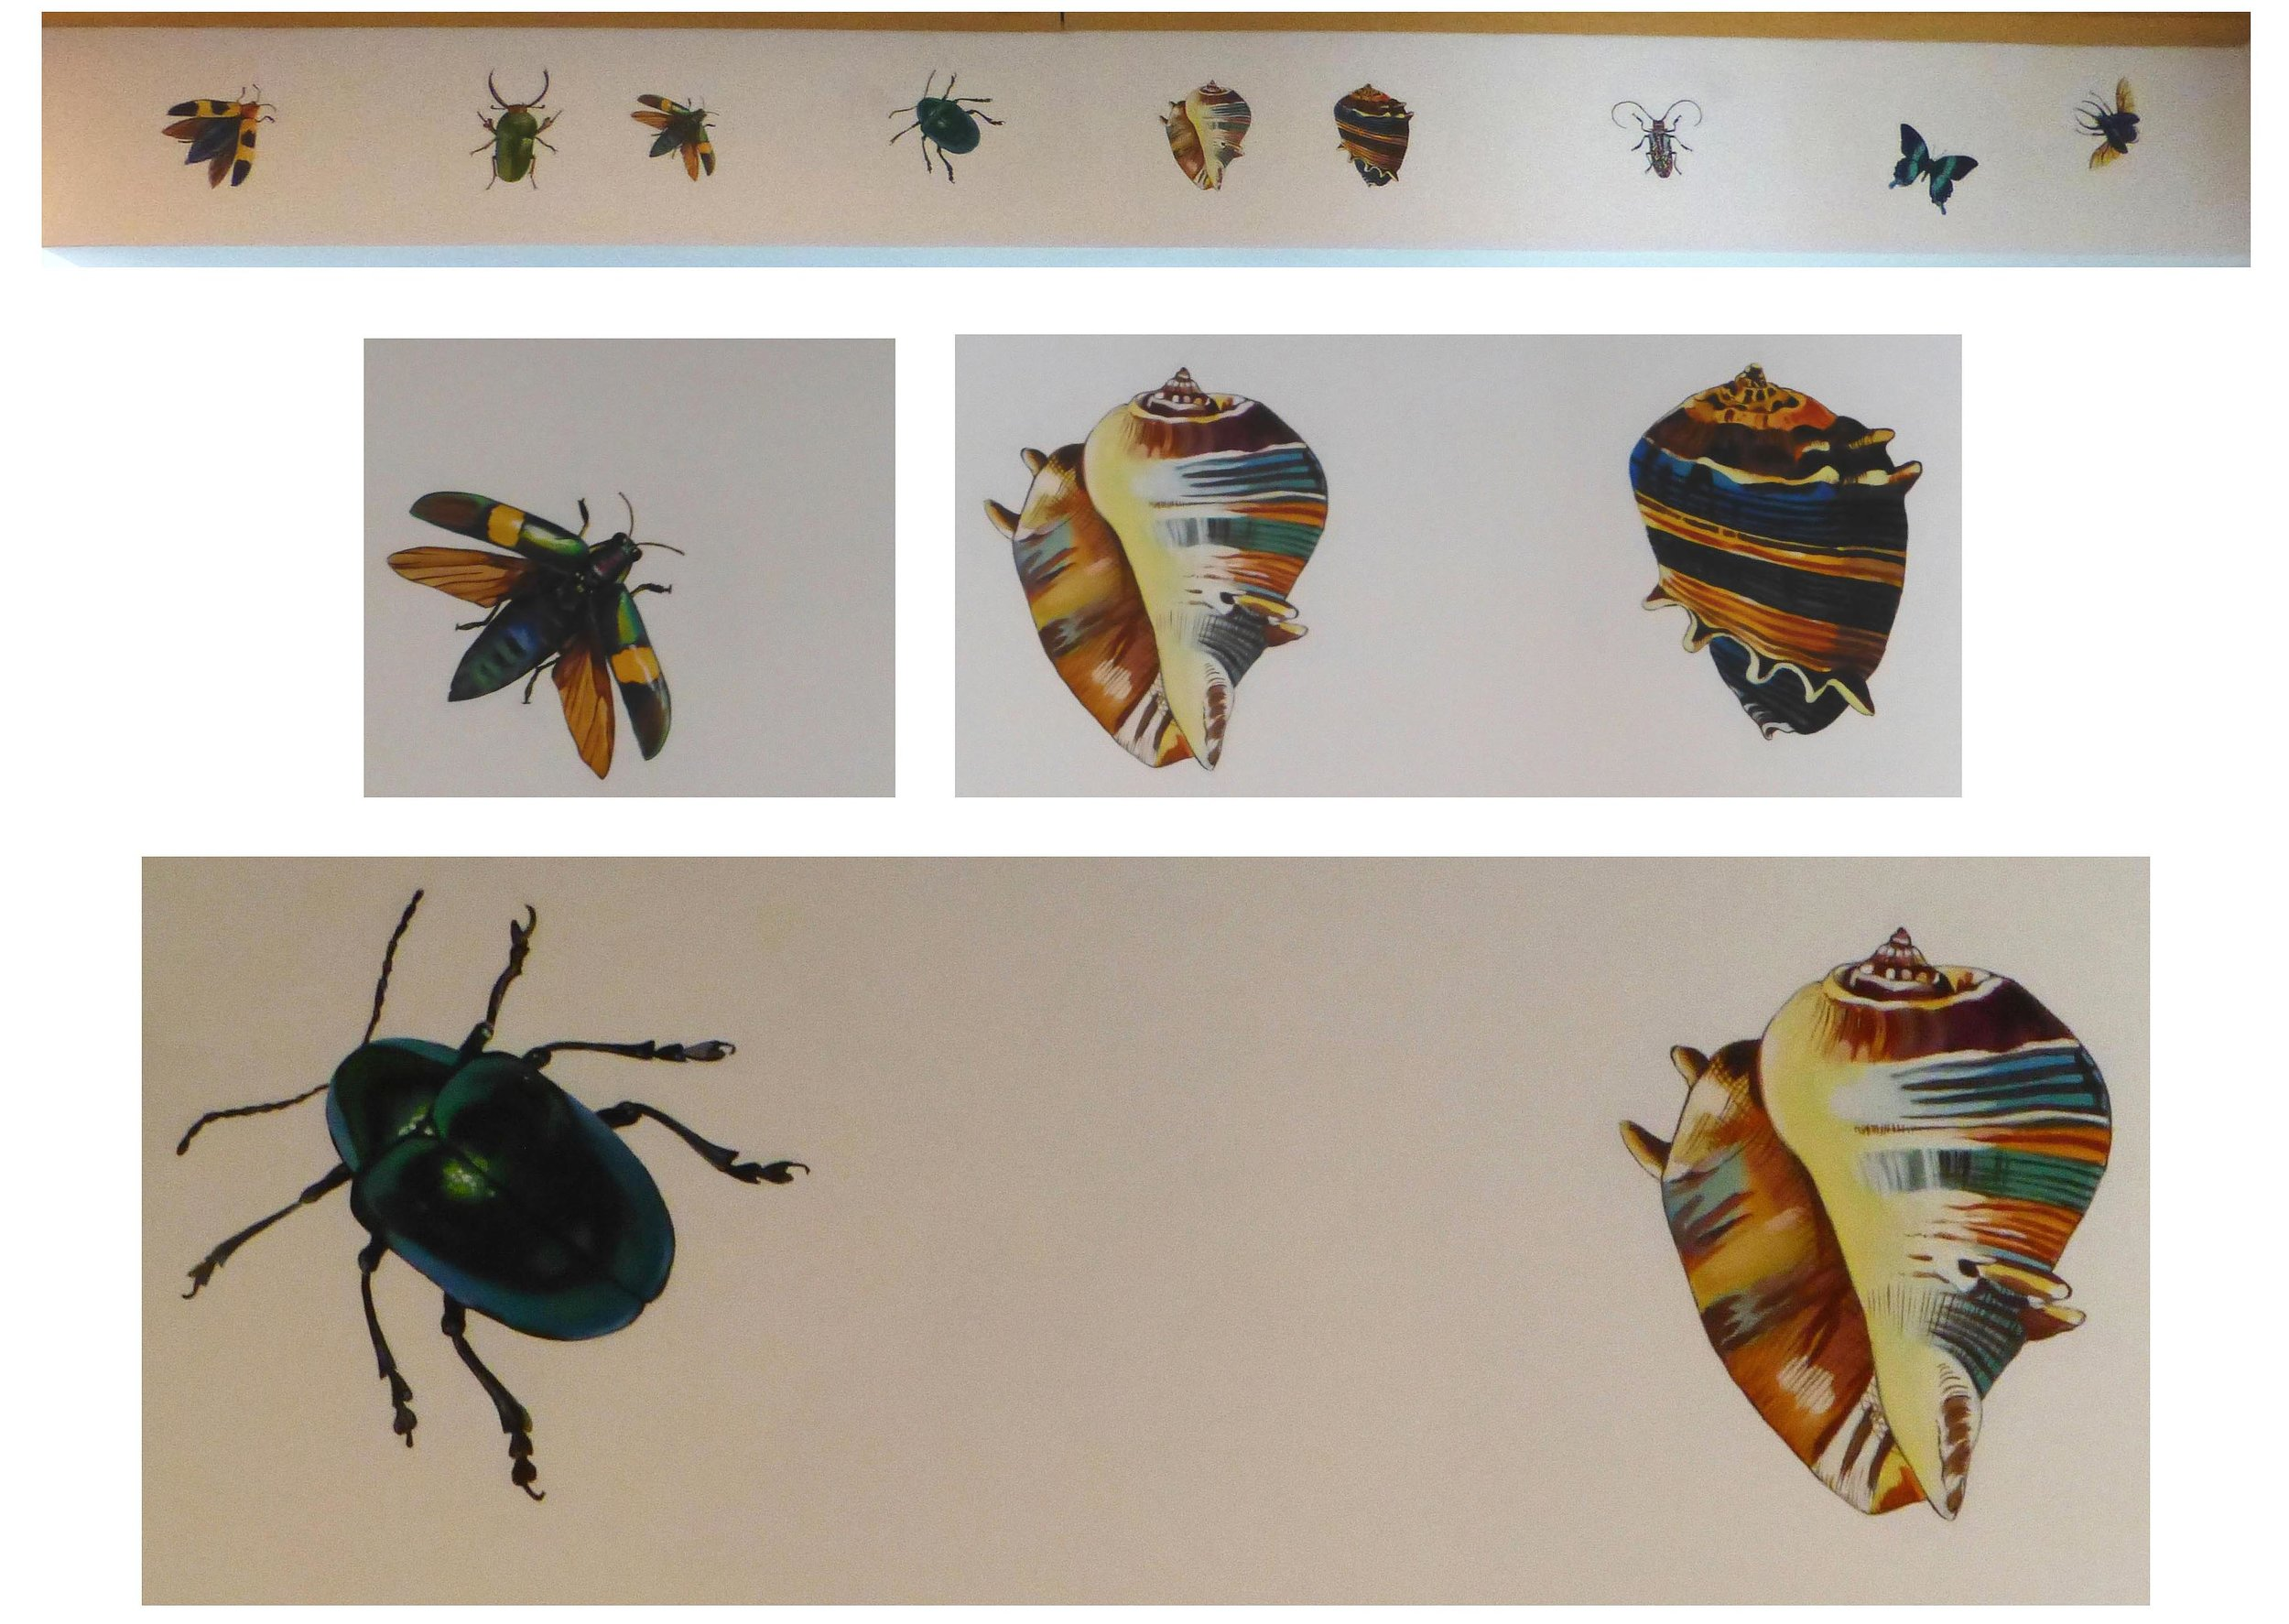 Shells and bugs painted along ceiling adjoining 2 rooms